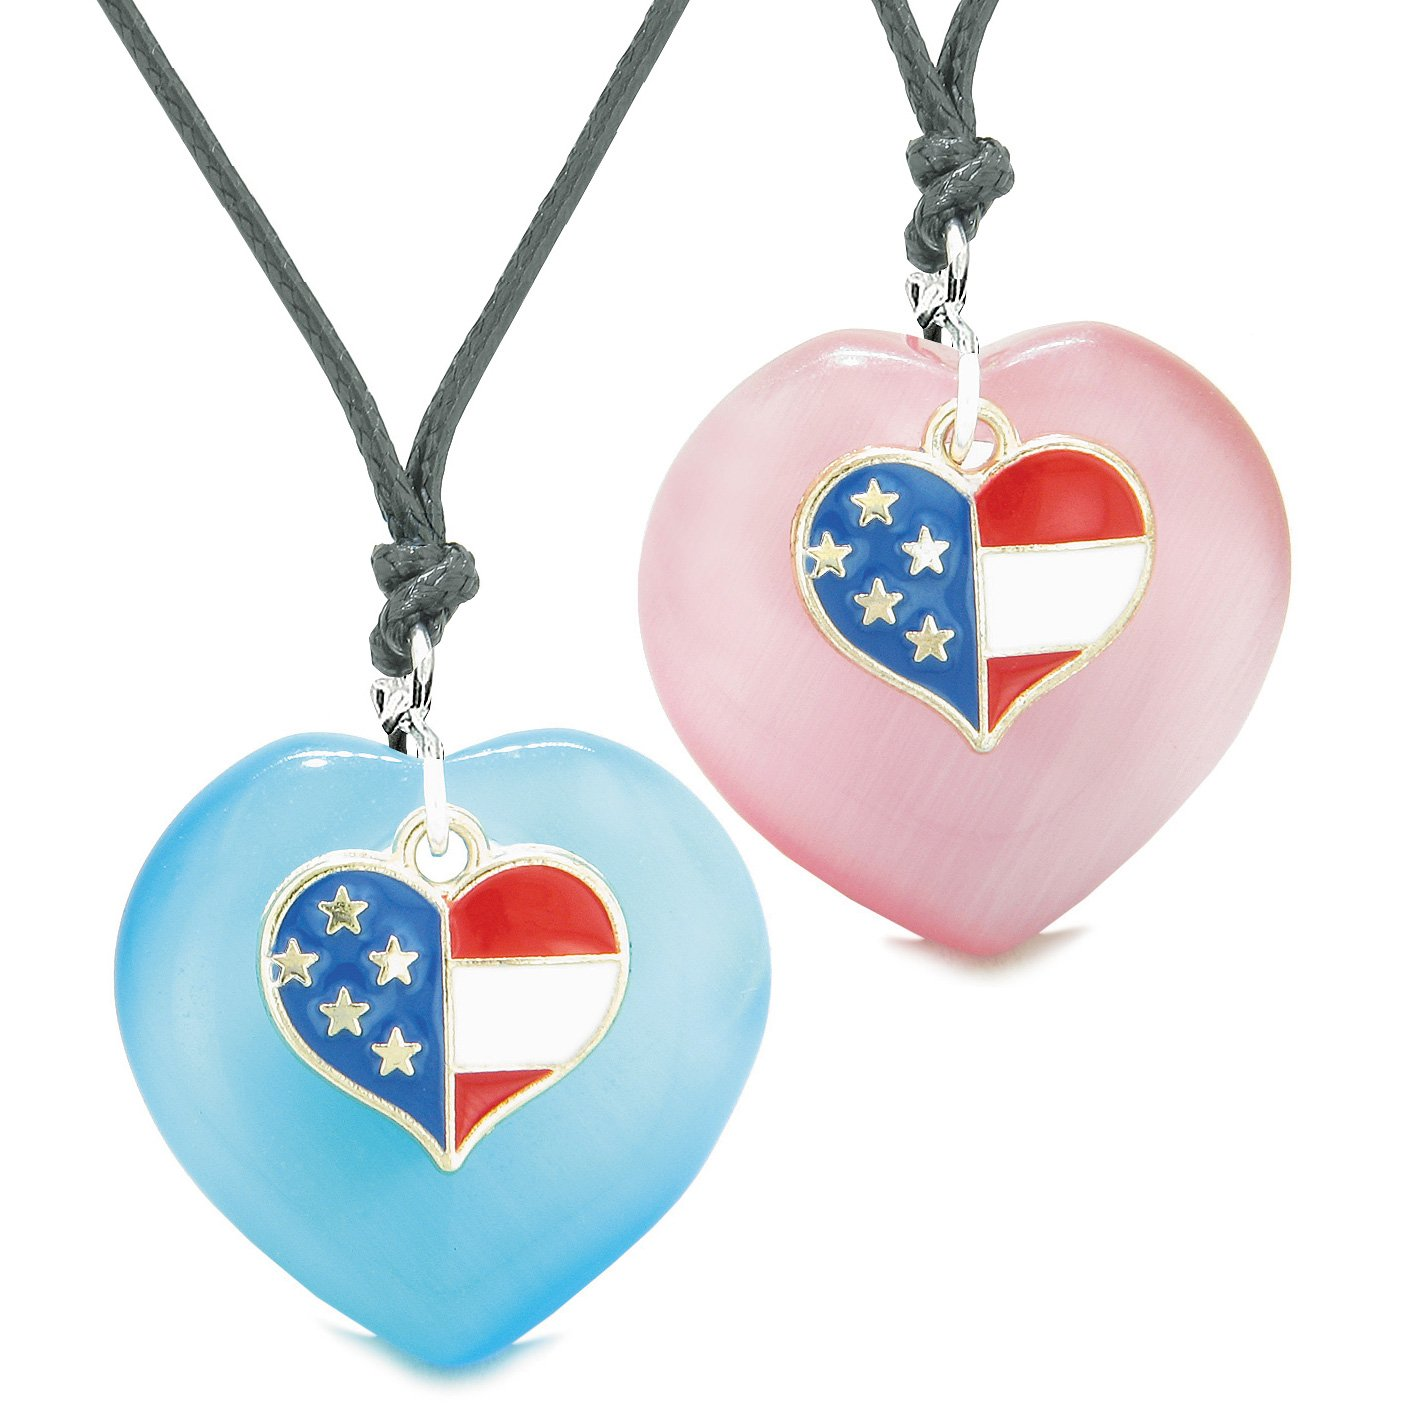 Proud USA Flag Super Heart Charm Love Couples BFF Set Blue Pink Simulated Cats Eye Amulet Cord Necklaces